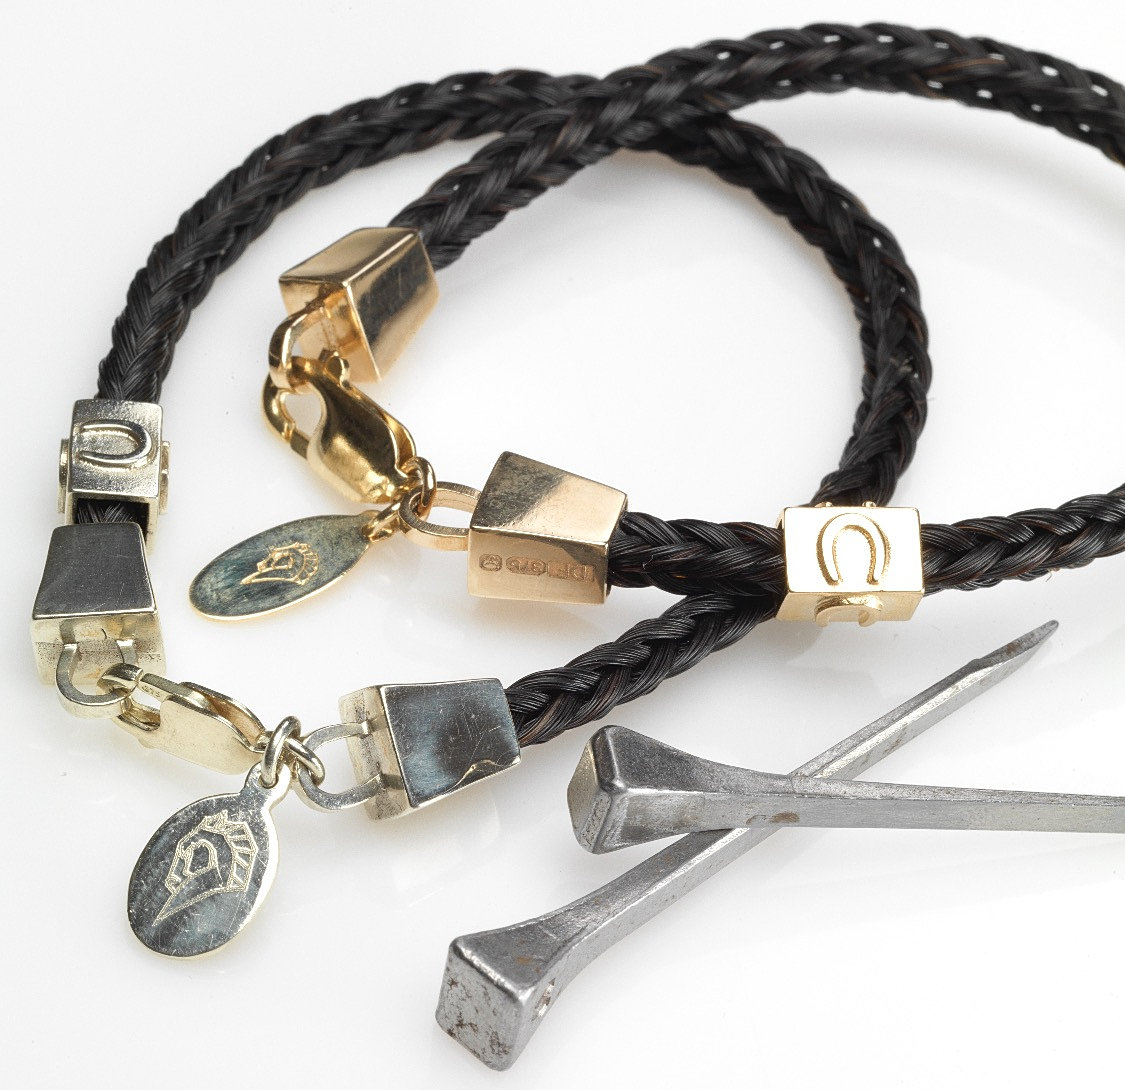 Ponylocks Custom Horsehair Jewelry Home: Stunning Custom Horse Hair Bracelets From The Hair Of Your